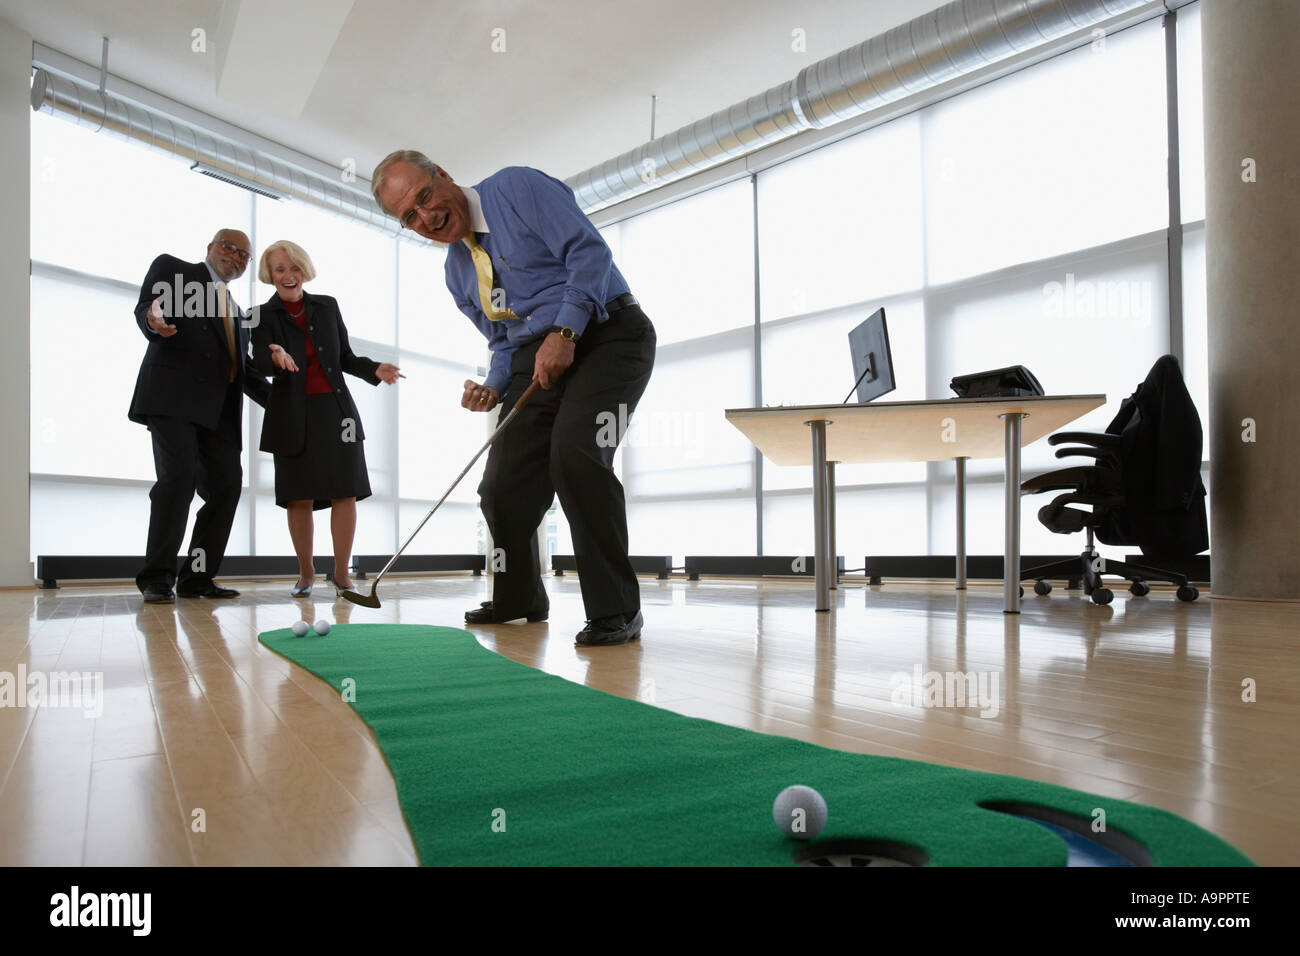 Three senior office workers practicing putting - Stock Image